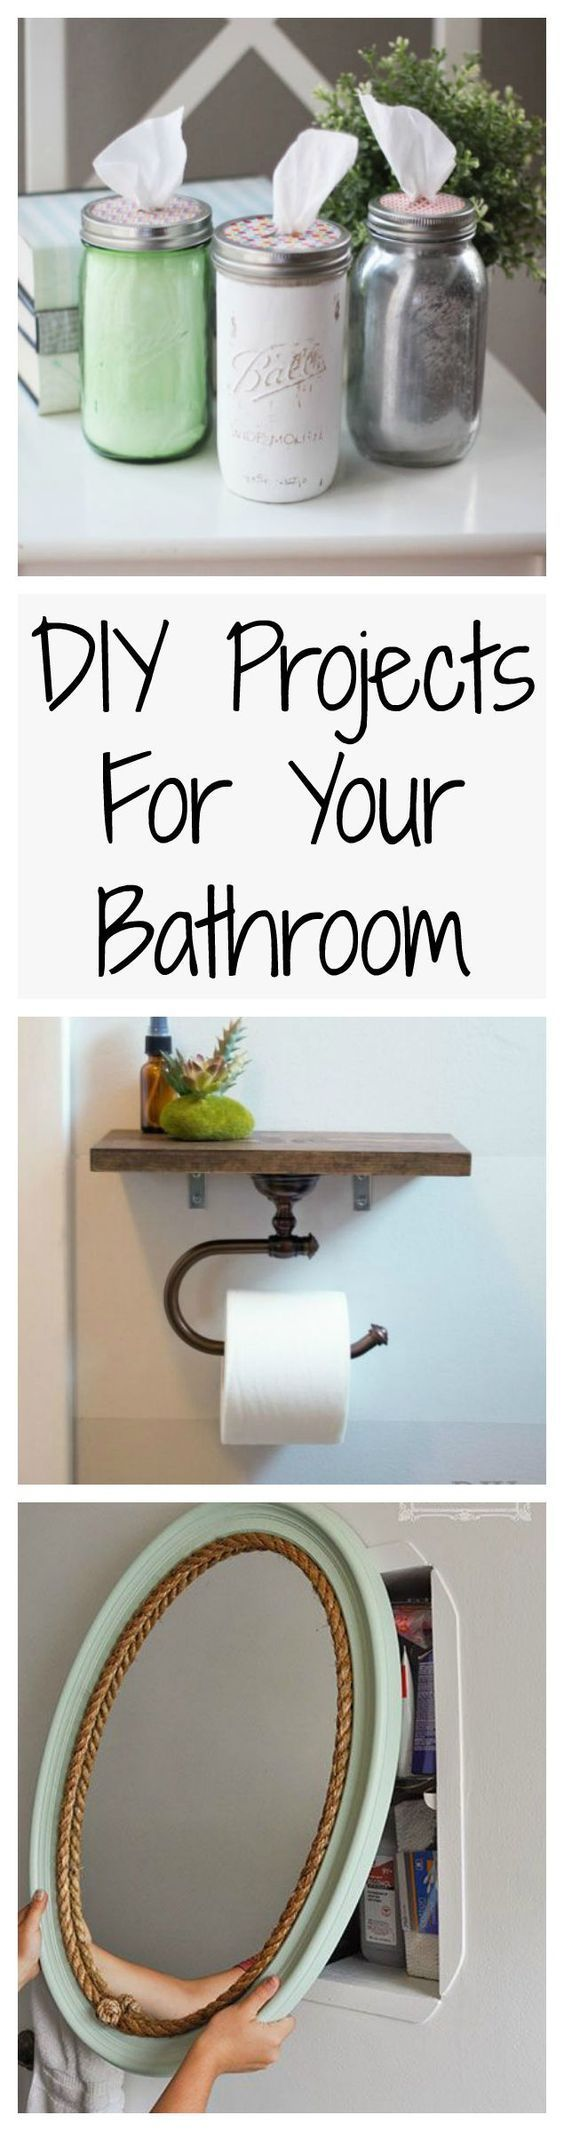 Your bathroom should be just as pretty as all the other rooms in your house, and these easy DIY projects could help make that happen.                                                                                                                                                                                 More #EasyHomeDécor,